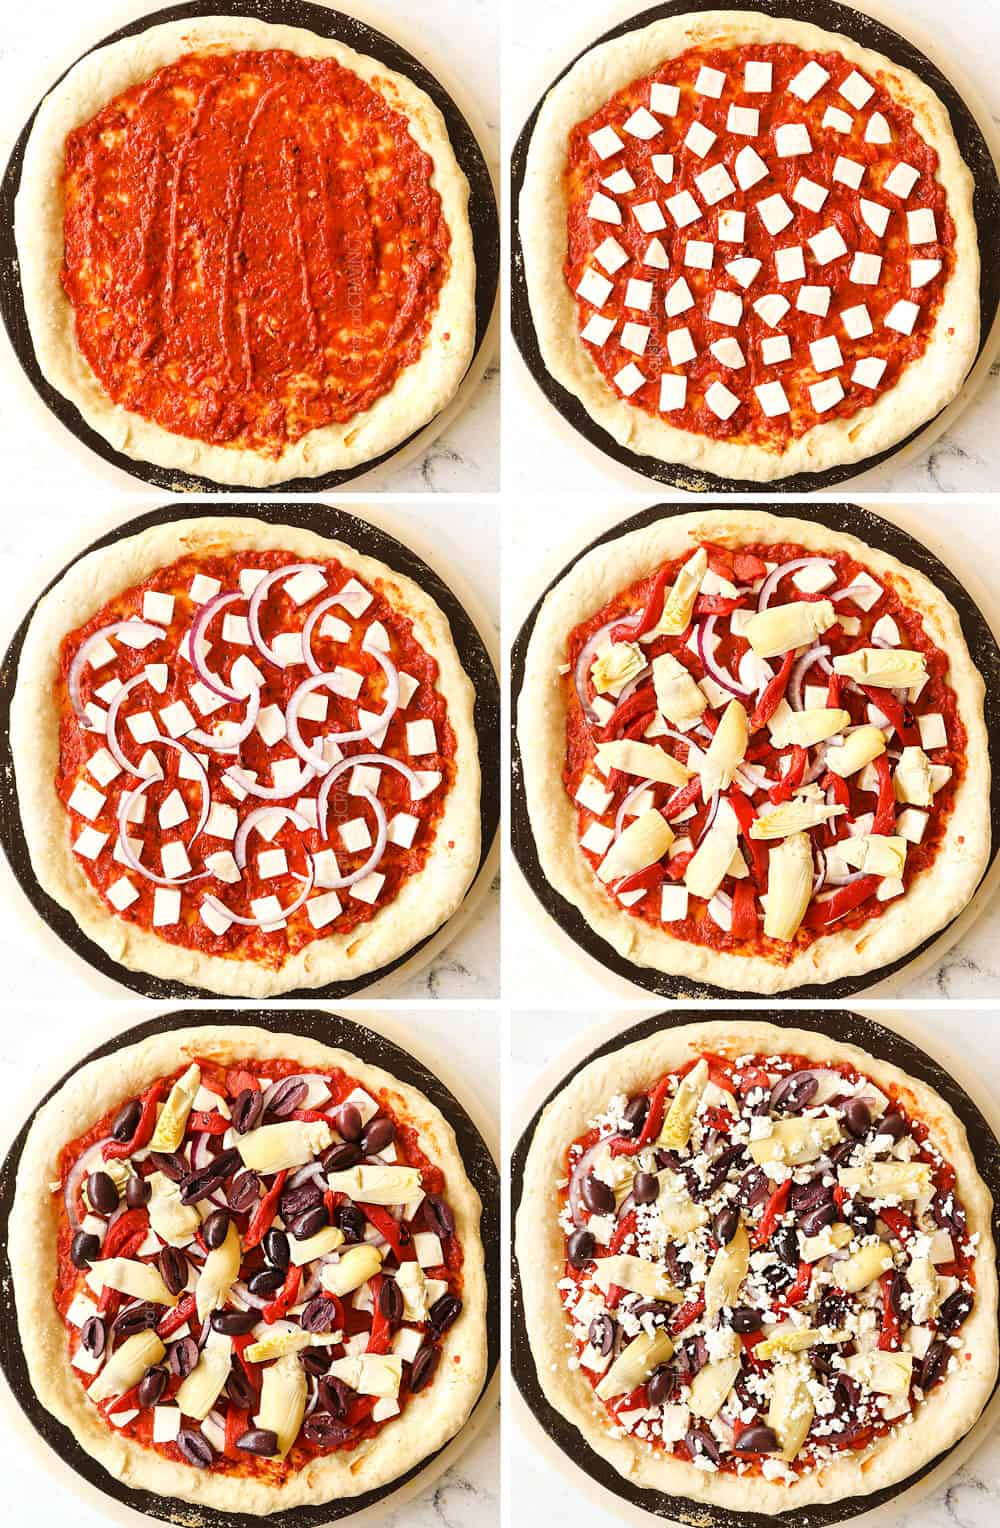 a collage showing how to make Greek PIzza by adding sauce, mozzarella, red onions, artichokes, olives, roasted red peppers and feta